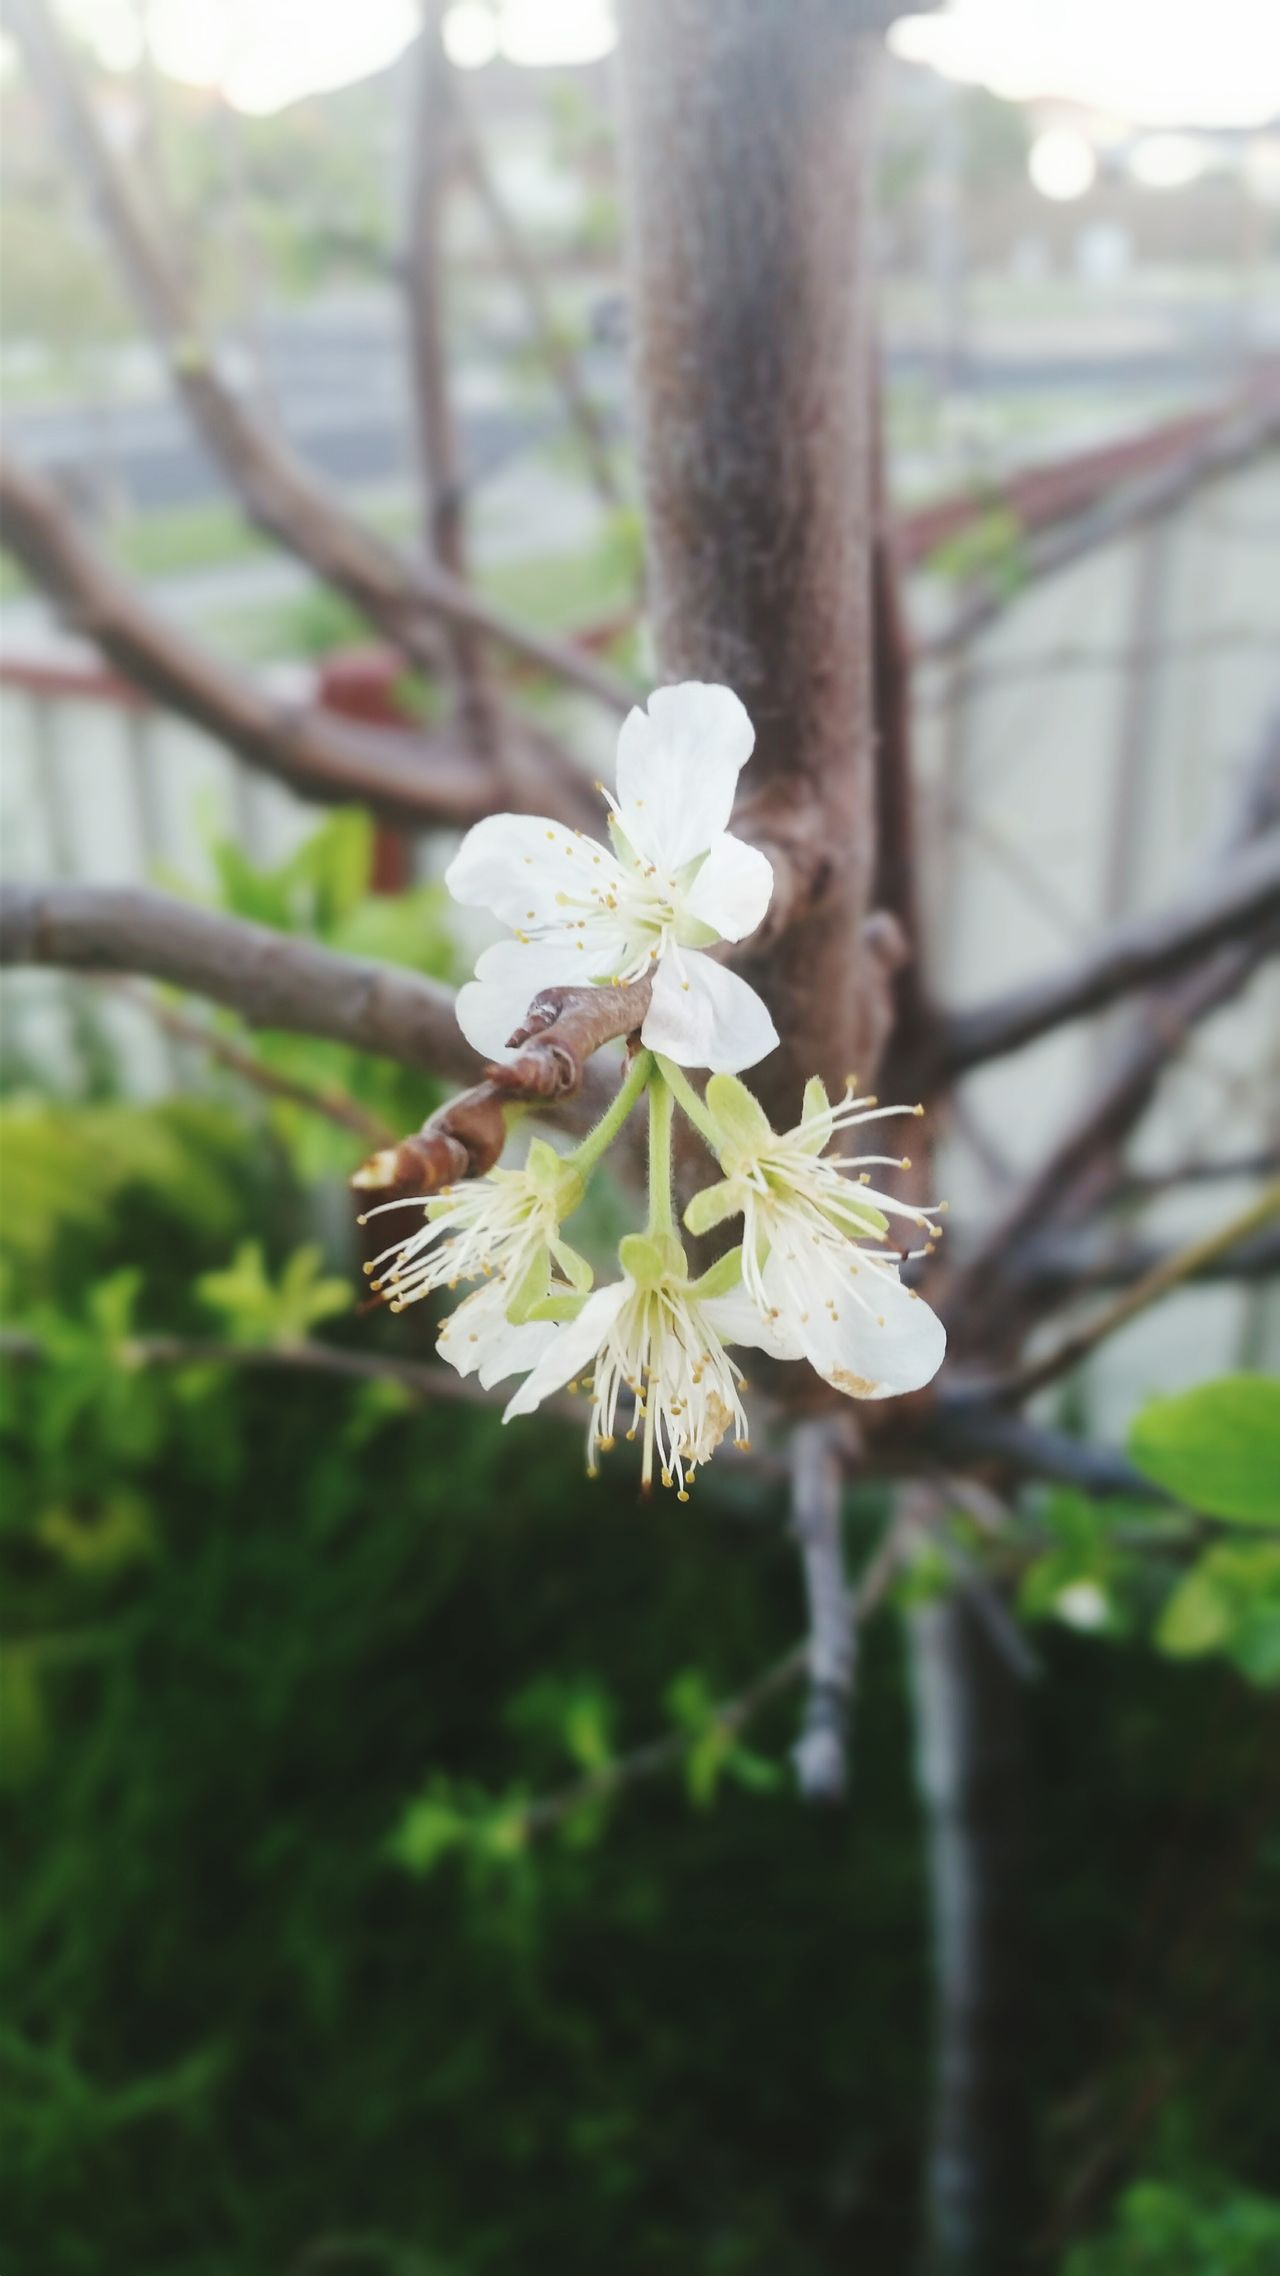 Flower Growth Close-up Focus On Foreground Beauty In Nature Tree Trunk In Bloom Blossom Outdoors Flower Head Branch Nature Apricot Blossoms Apricot Tree Selective Focus Flower Photography